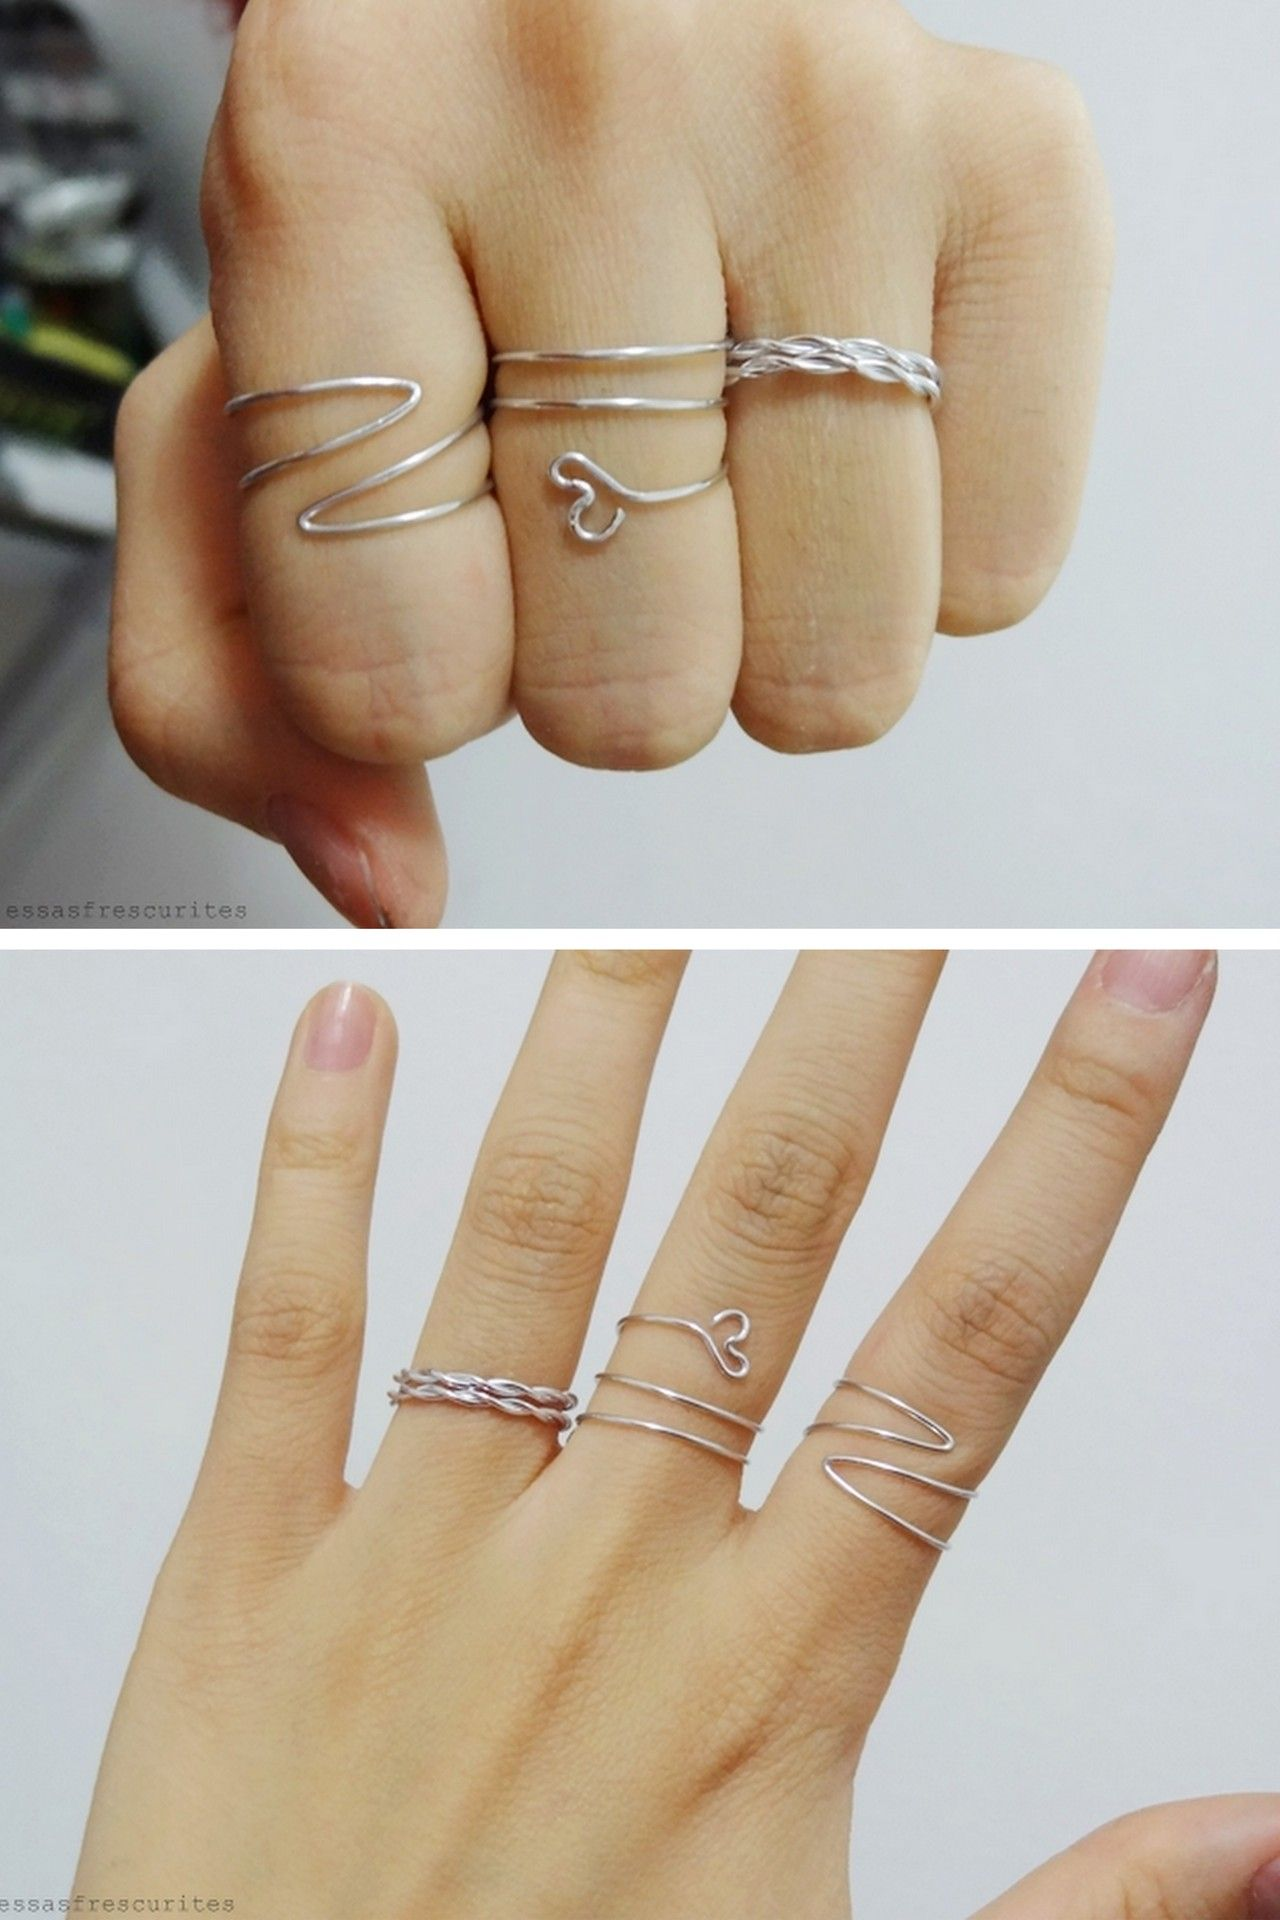 Diy 3 wire rings tutorials essas frescurites here for pages more of diy 3 wire rings tutorials essas frescurites here for pages more of easy wire jewelry solutioingenieria Image collections